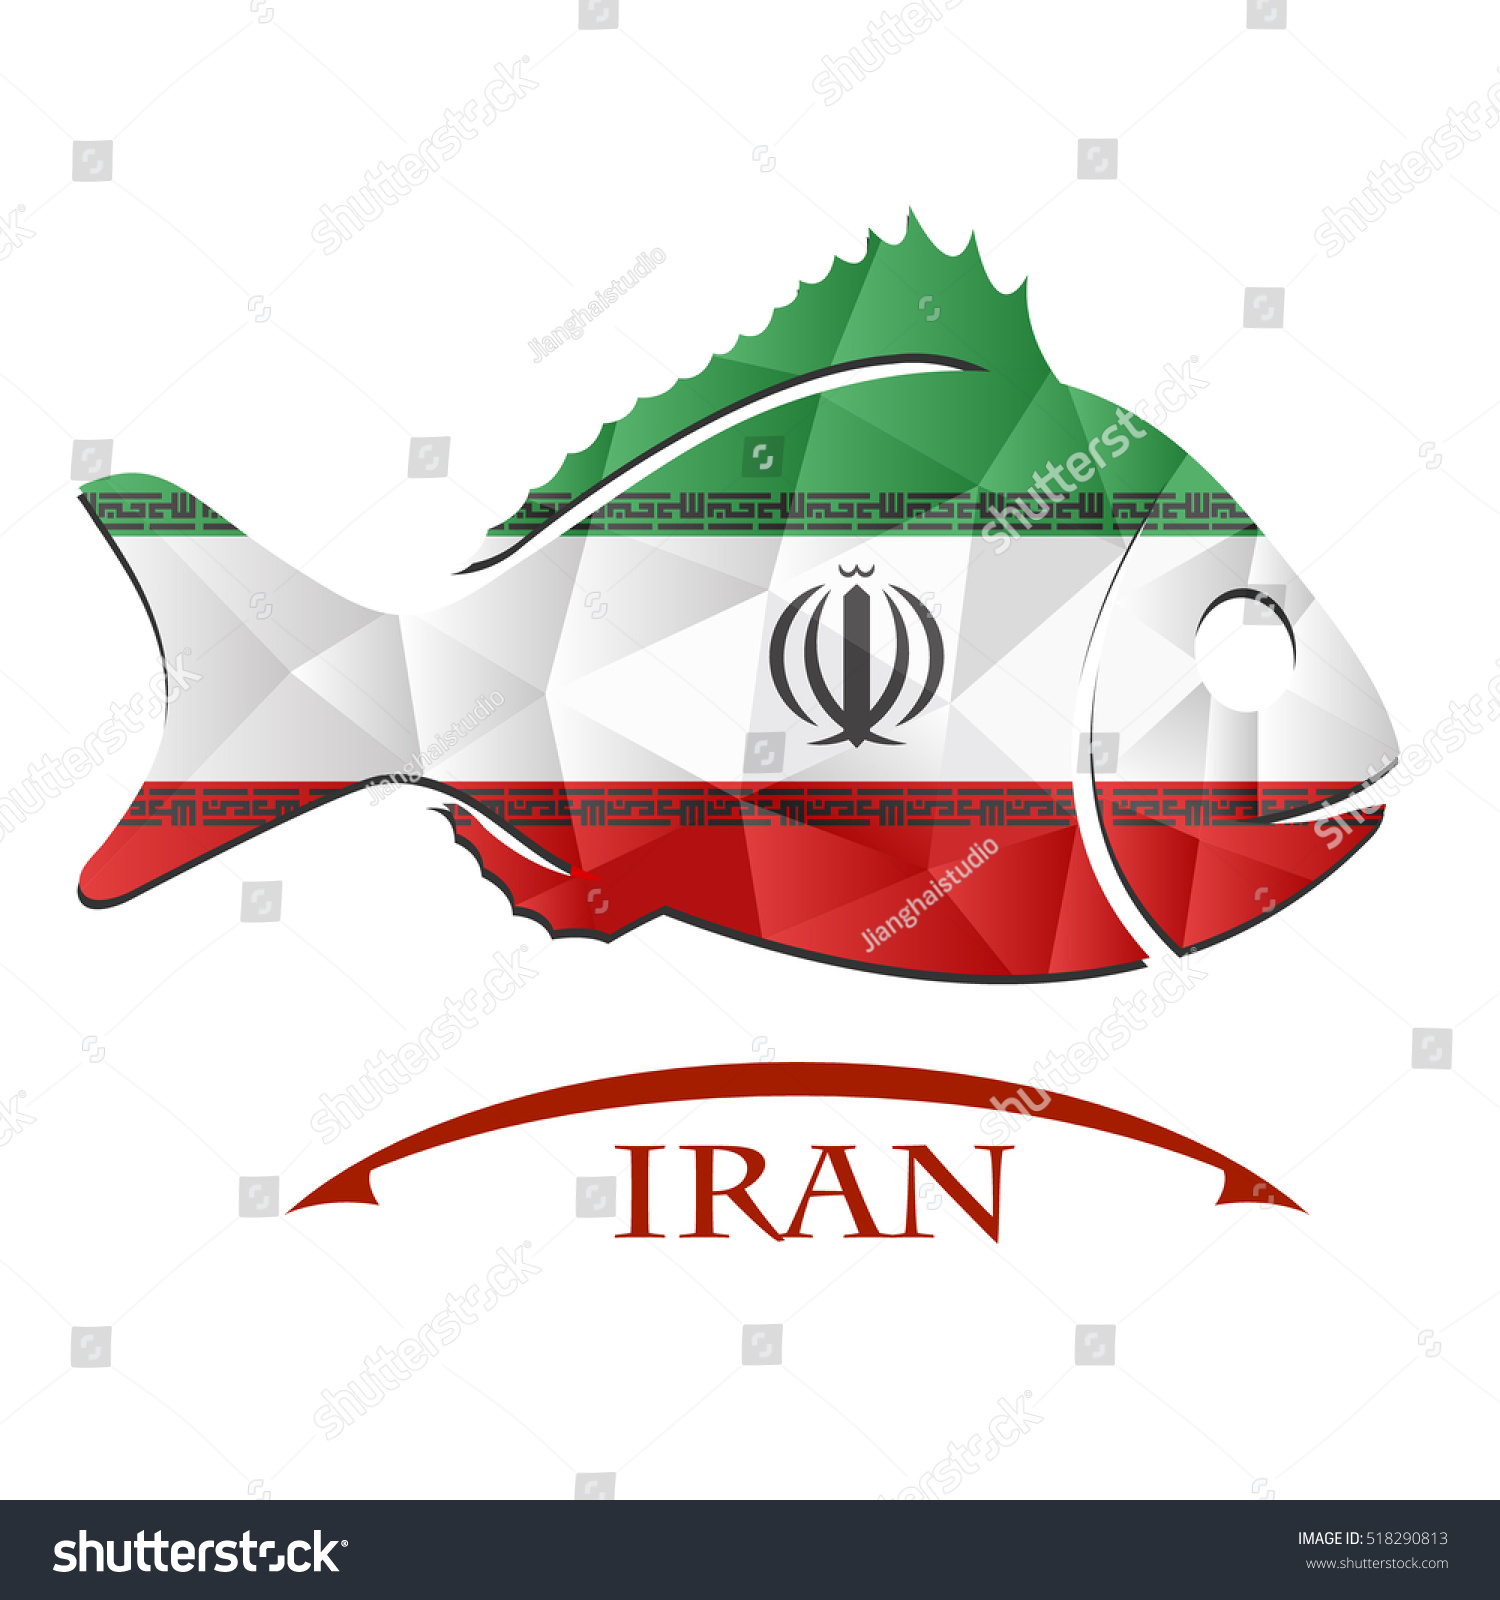 Fish logo made flag iran stock vector 518290813 shutterstock fish logo made from the flag of iran buycottarizona Choice Image